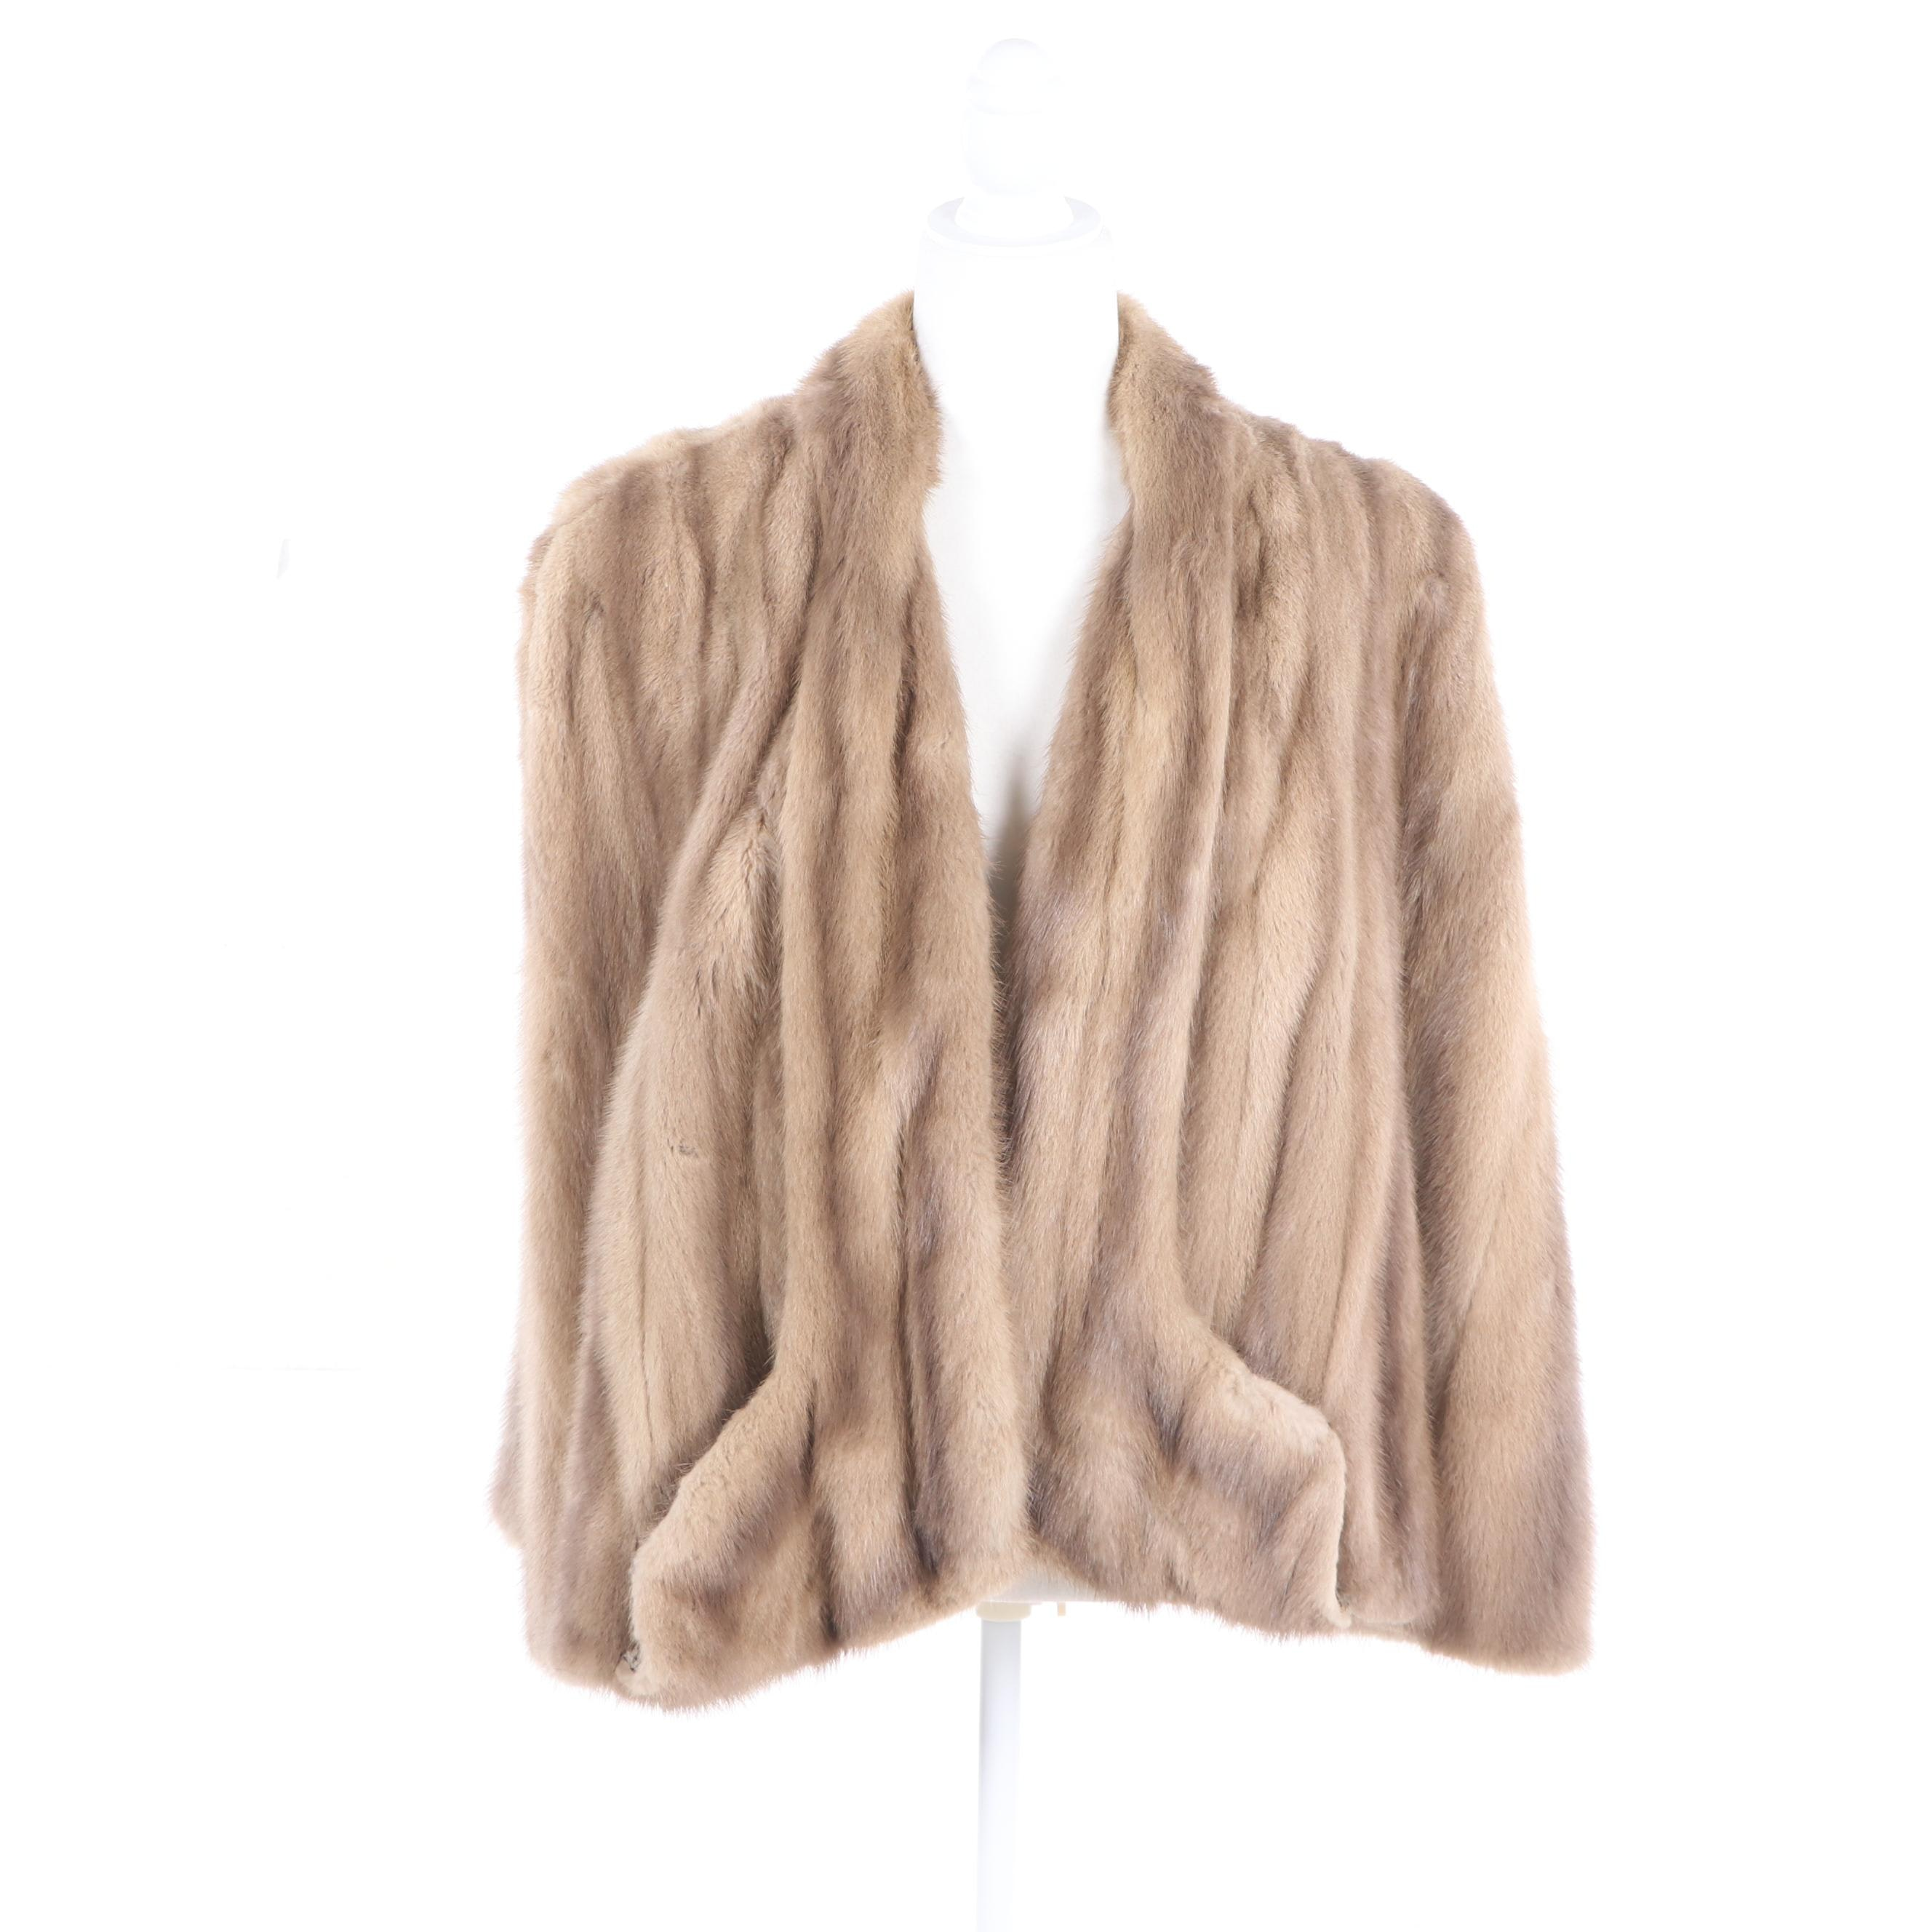 Women's Thorpe Mink Fur Capelet, Mid-20th Century